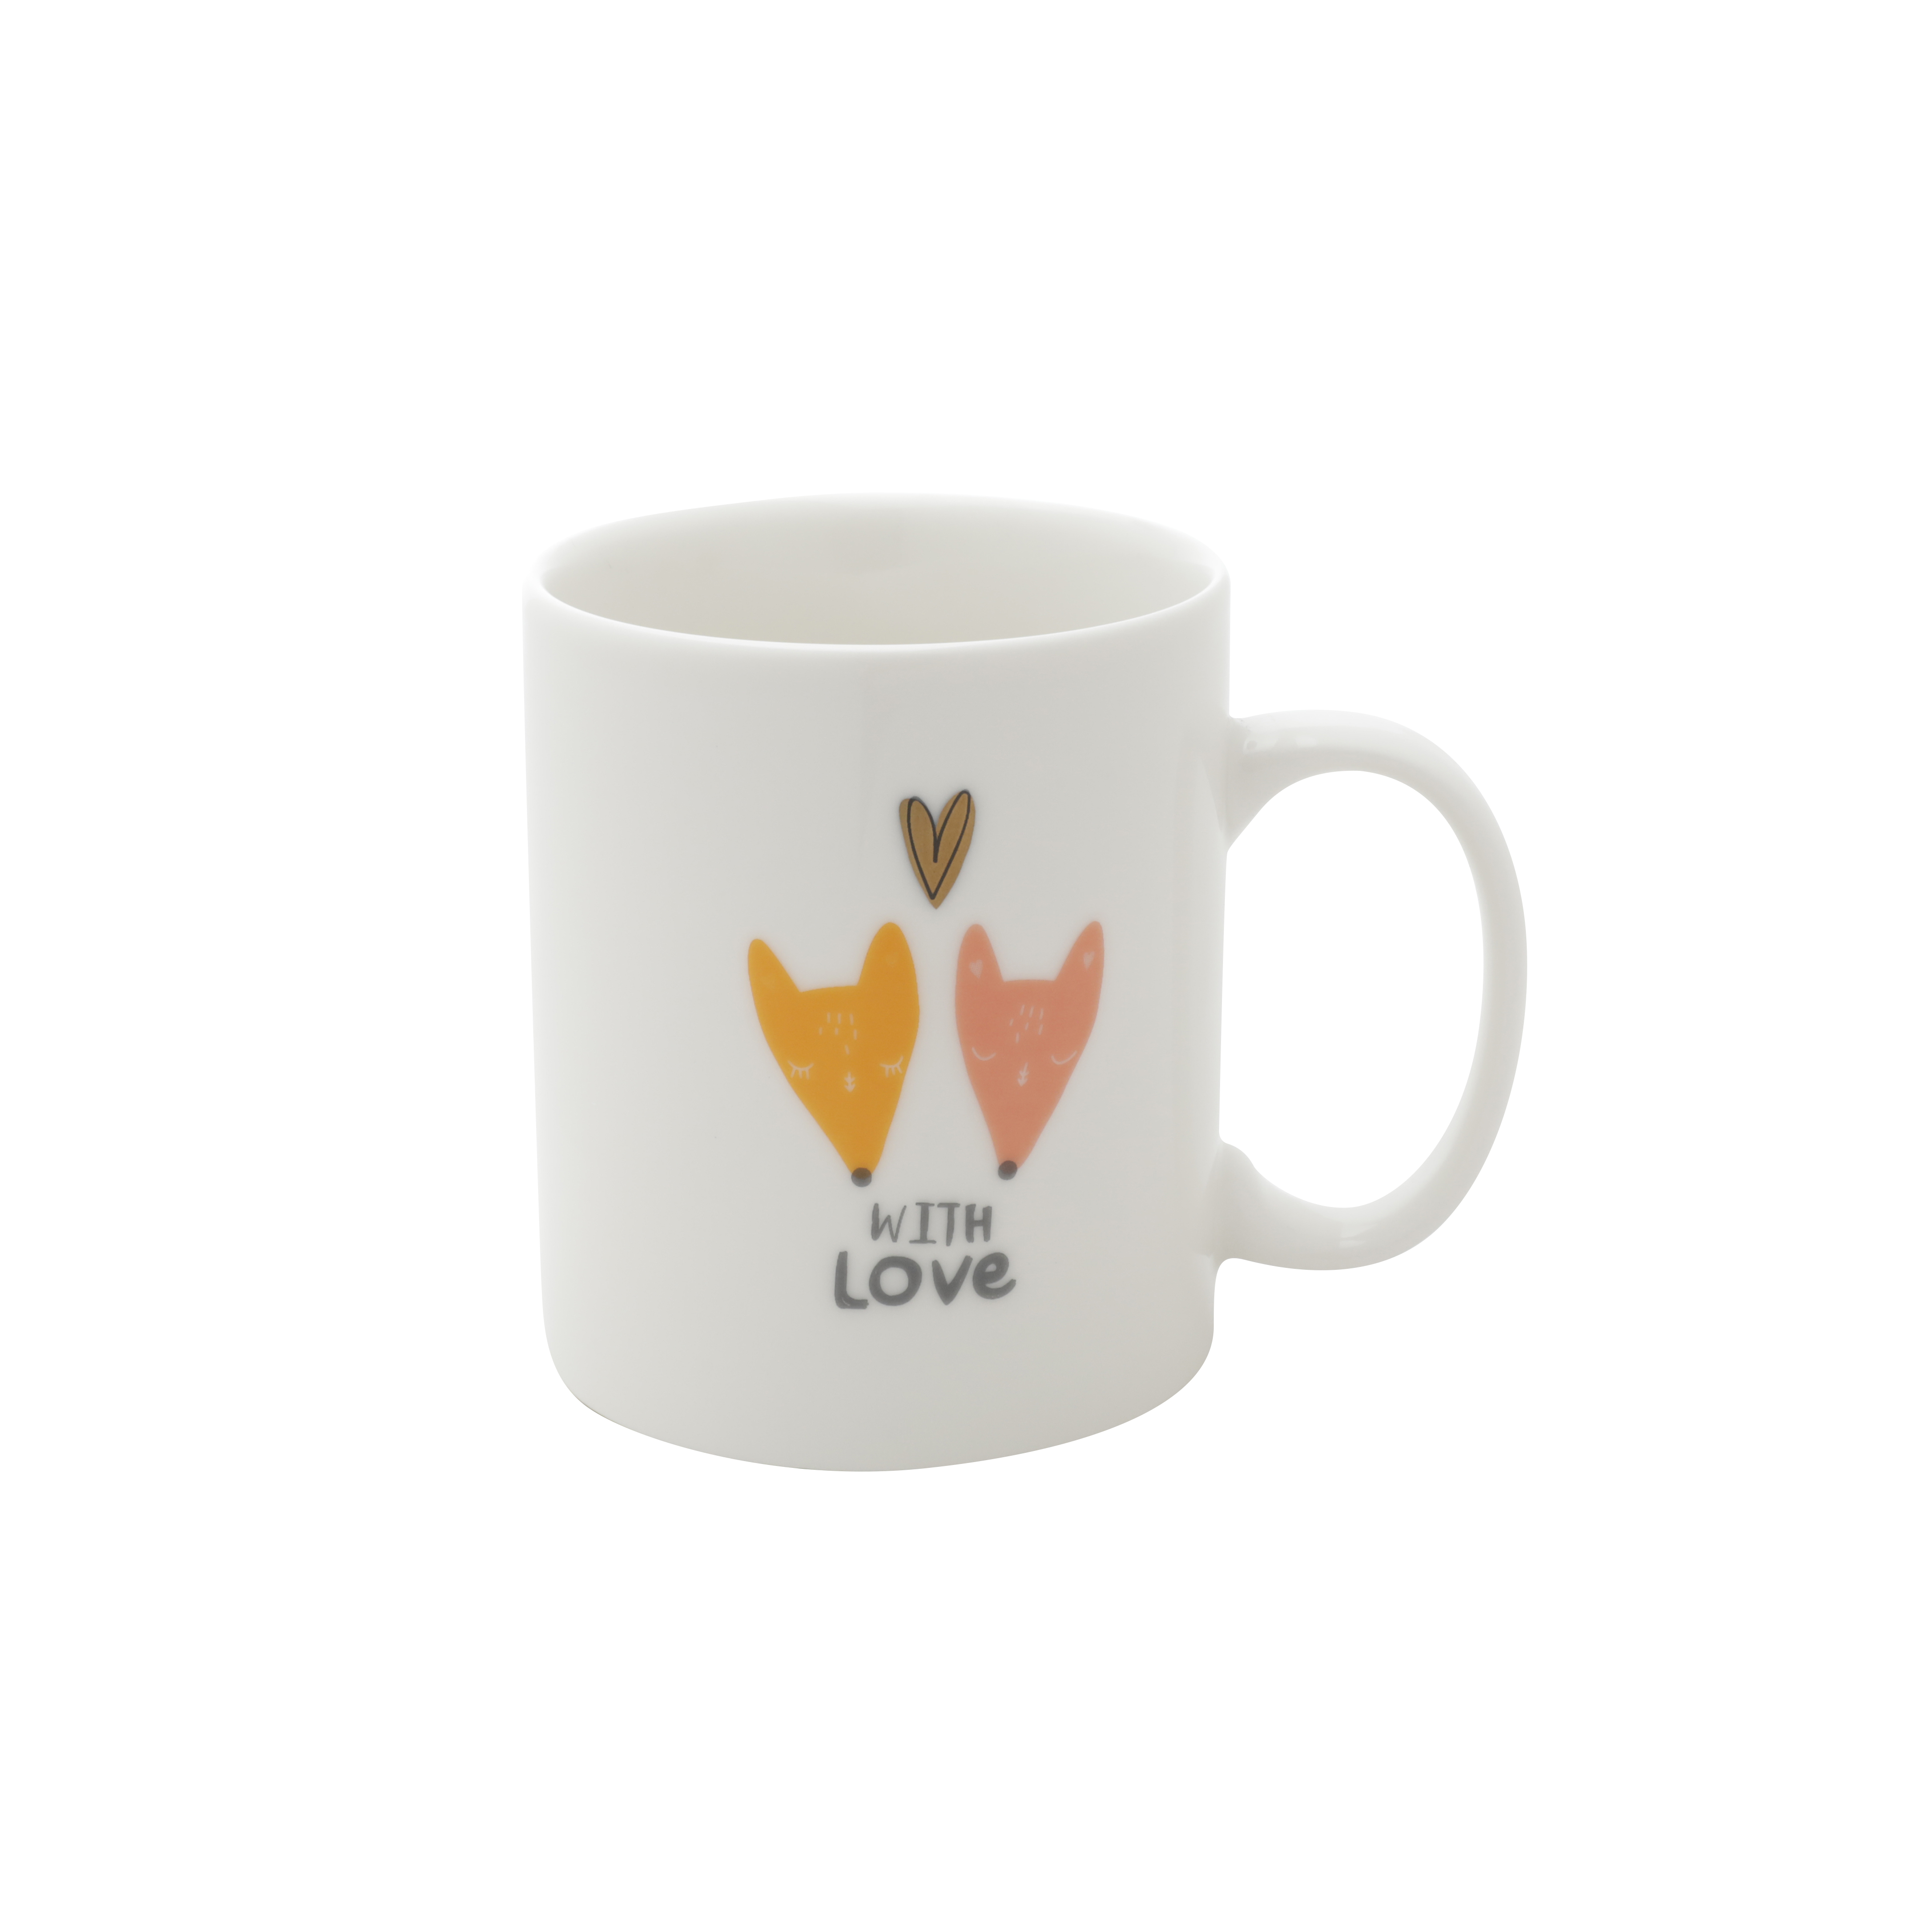 CANECA PORCELANA JUST LOVE YOU BRANCO 8,2X5,3X10,6 cm - 350ml